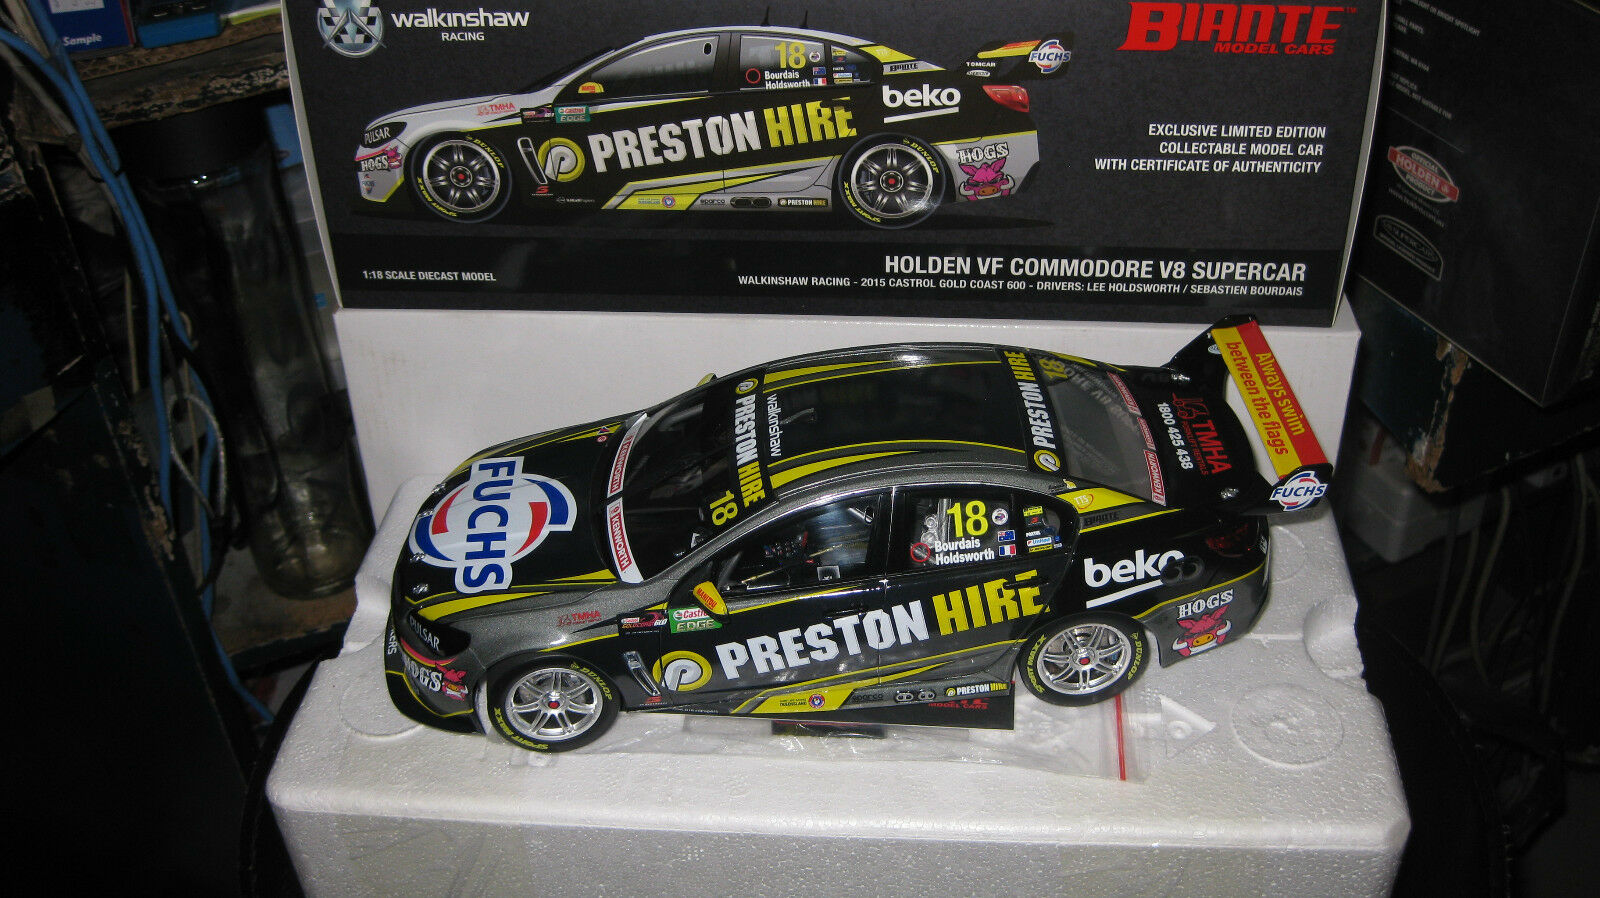 Biante 1   18 holdsworth bourdais holden commodore 2015 nach Gold coast 600   18.